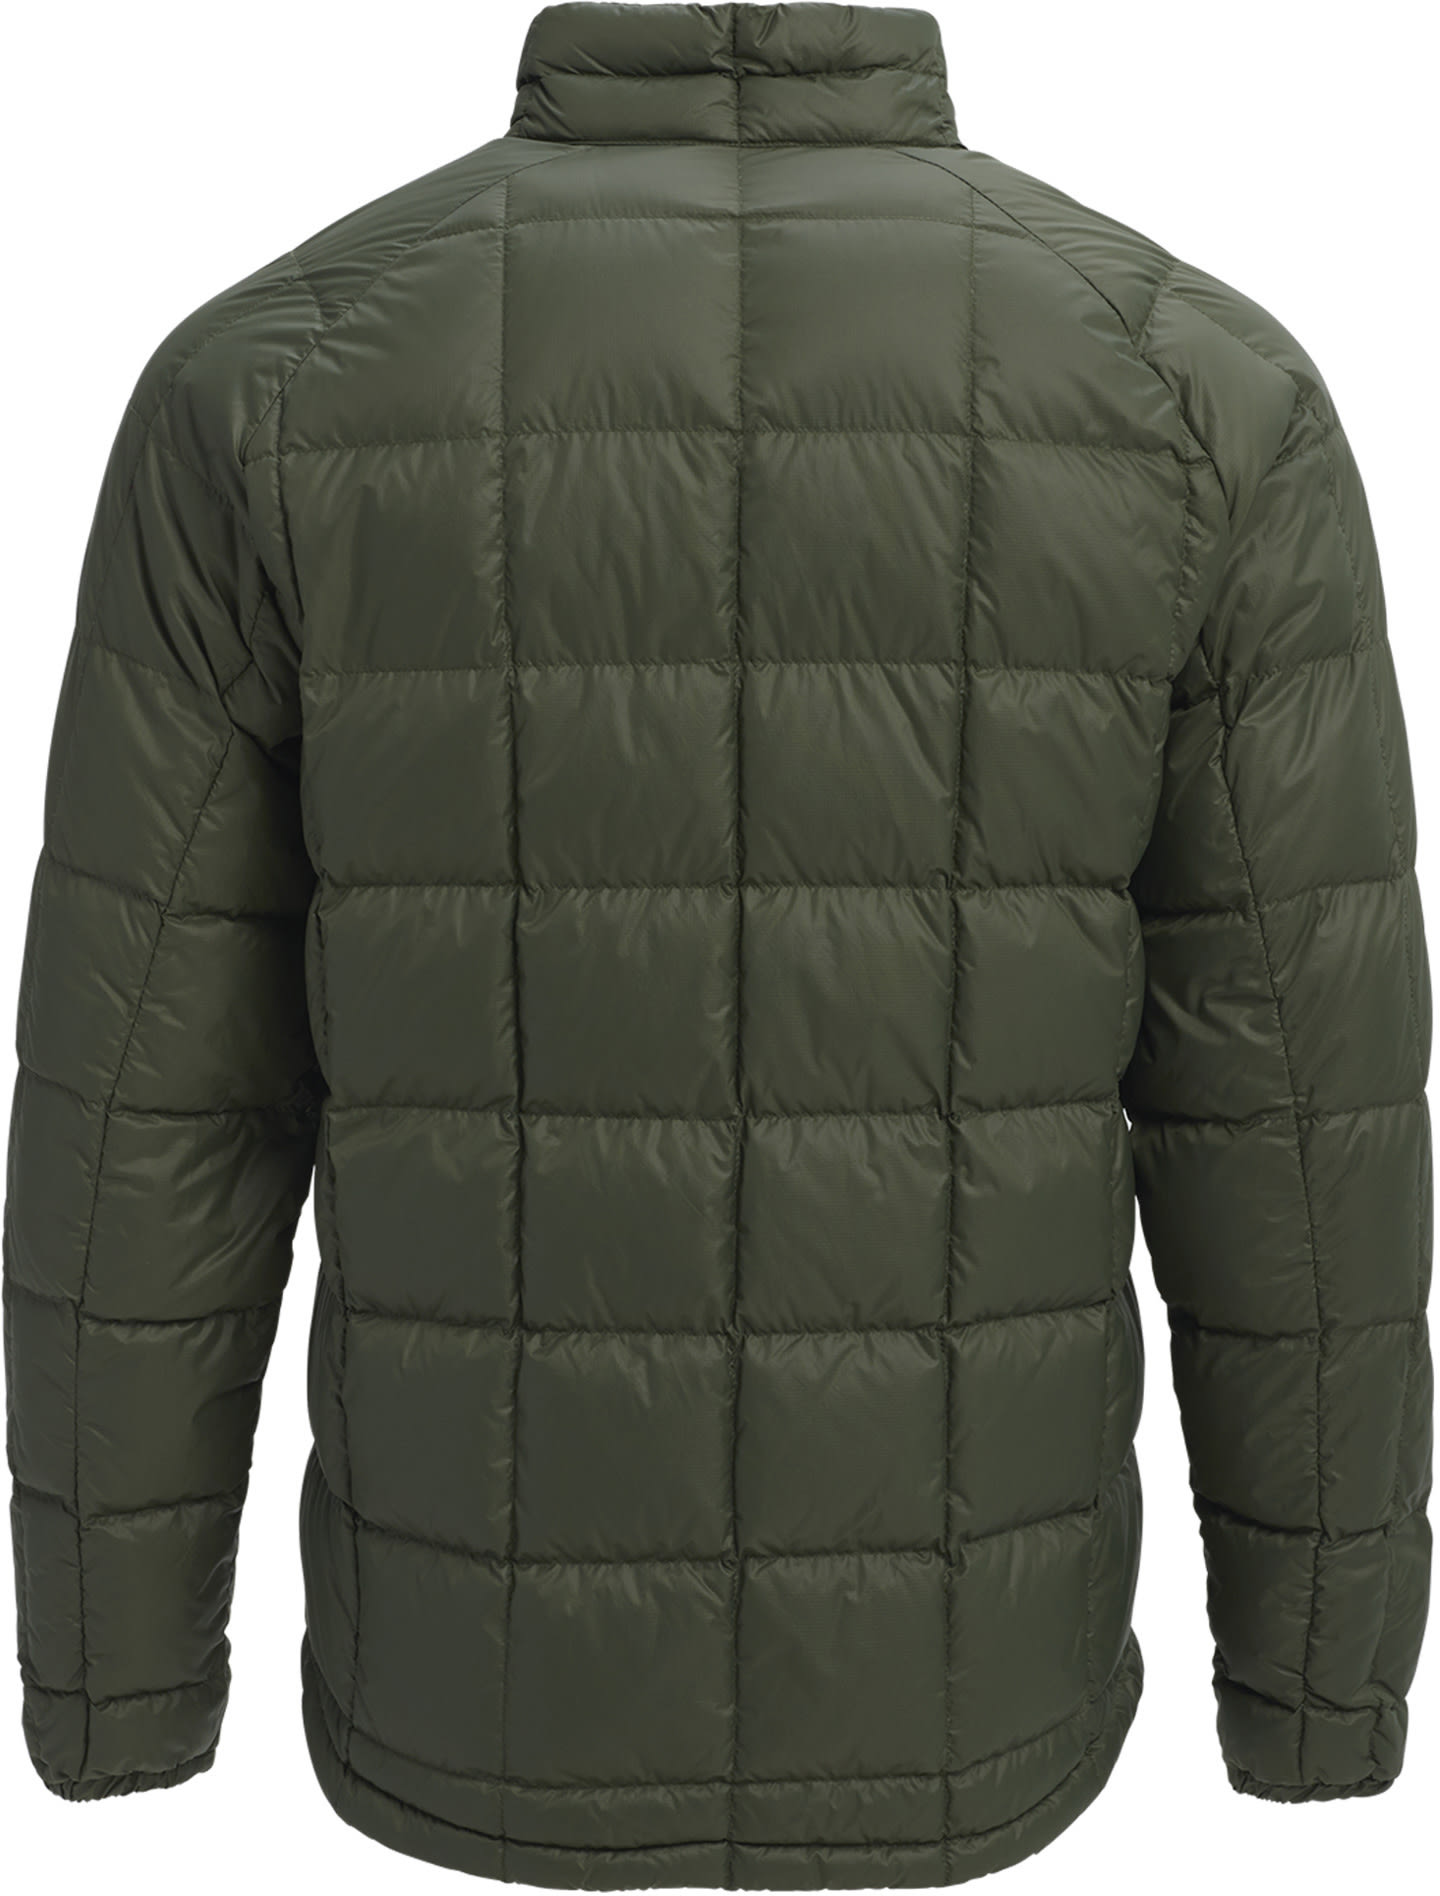 Burton Ak Bk Down Insulator Jacket 2019